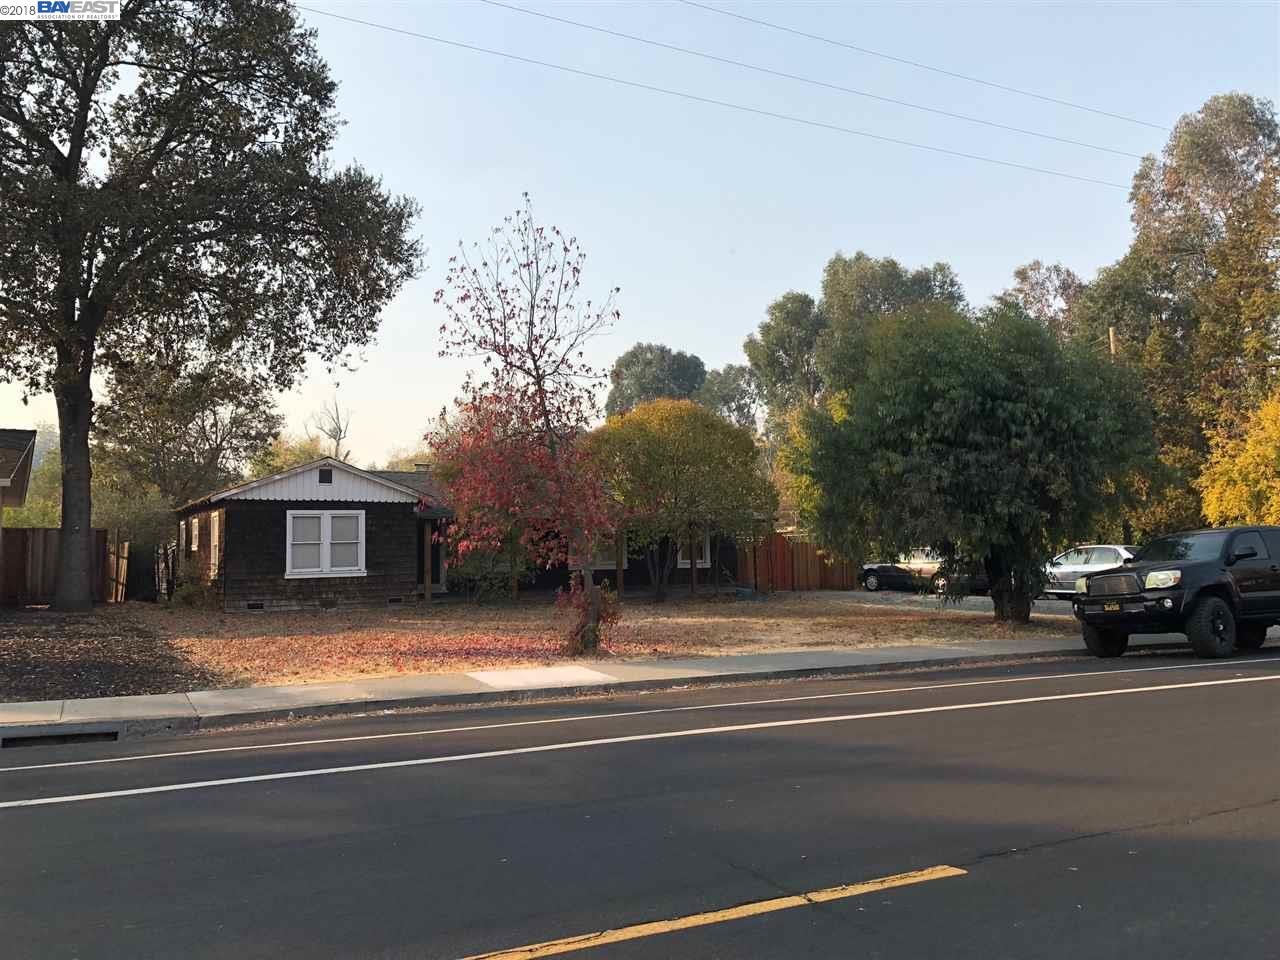 170 CLEAVELAND RD, PLEASANT HILL, CA 94523  Photo